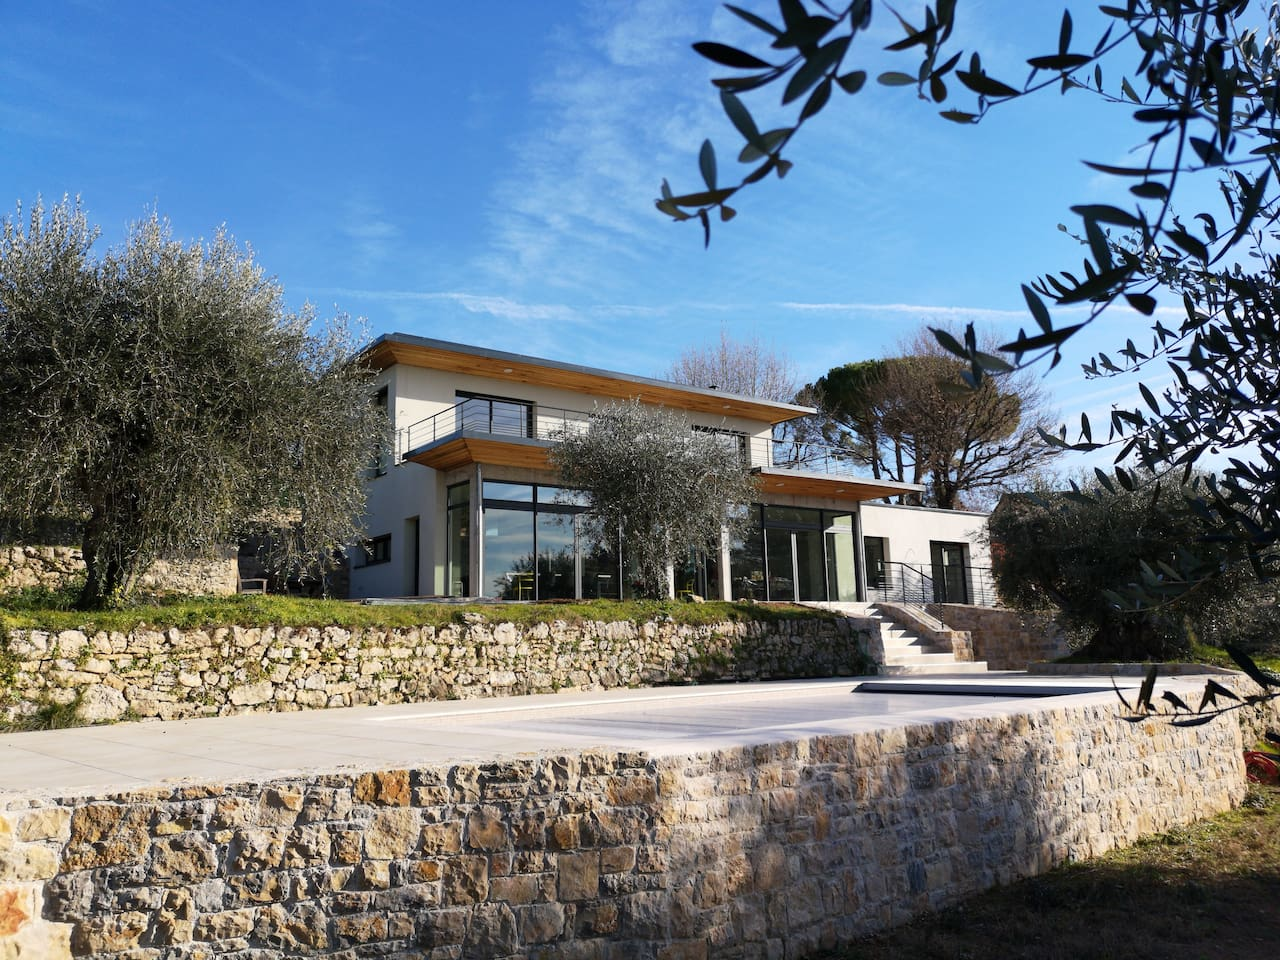 Outside view of the Bioclimatic Villa